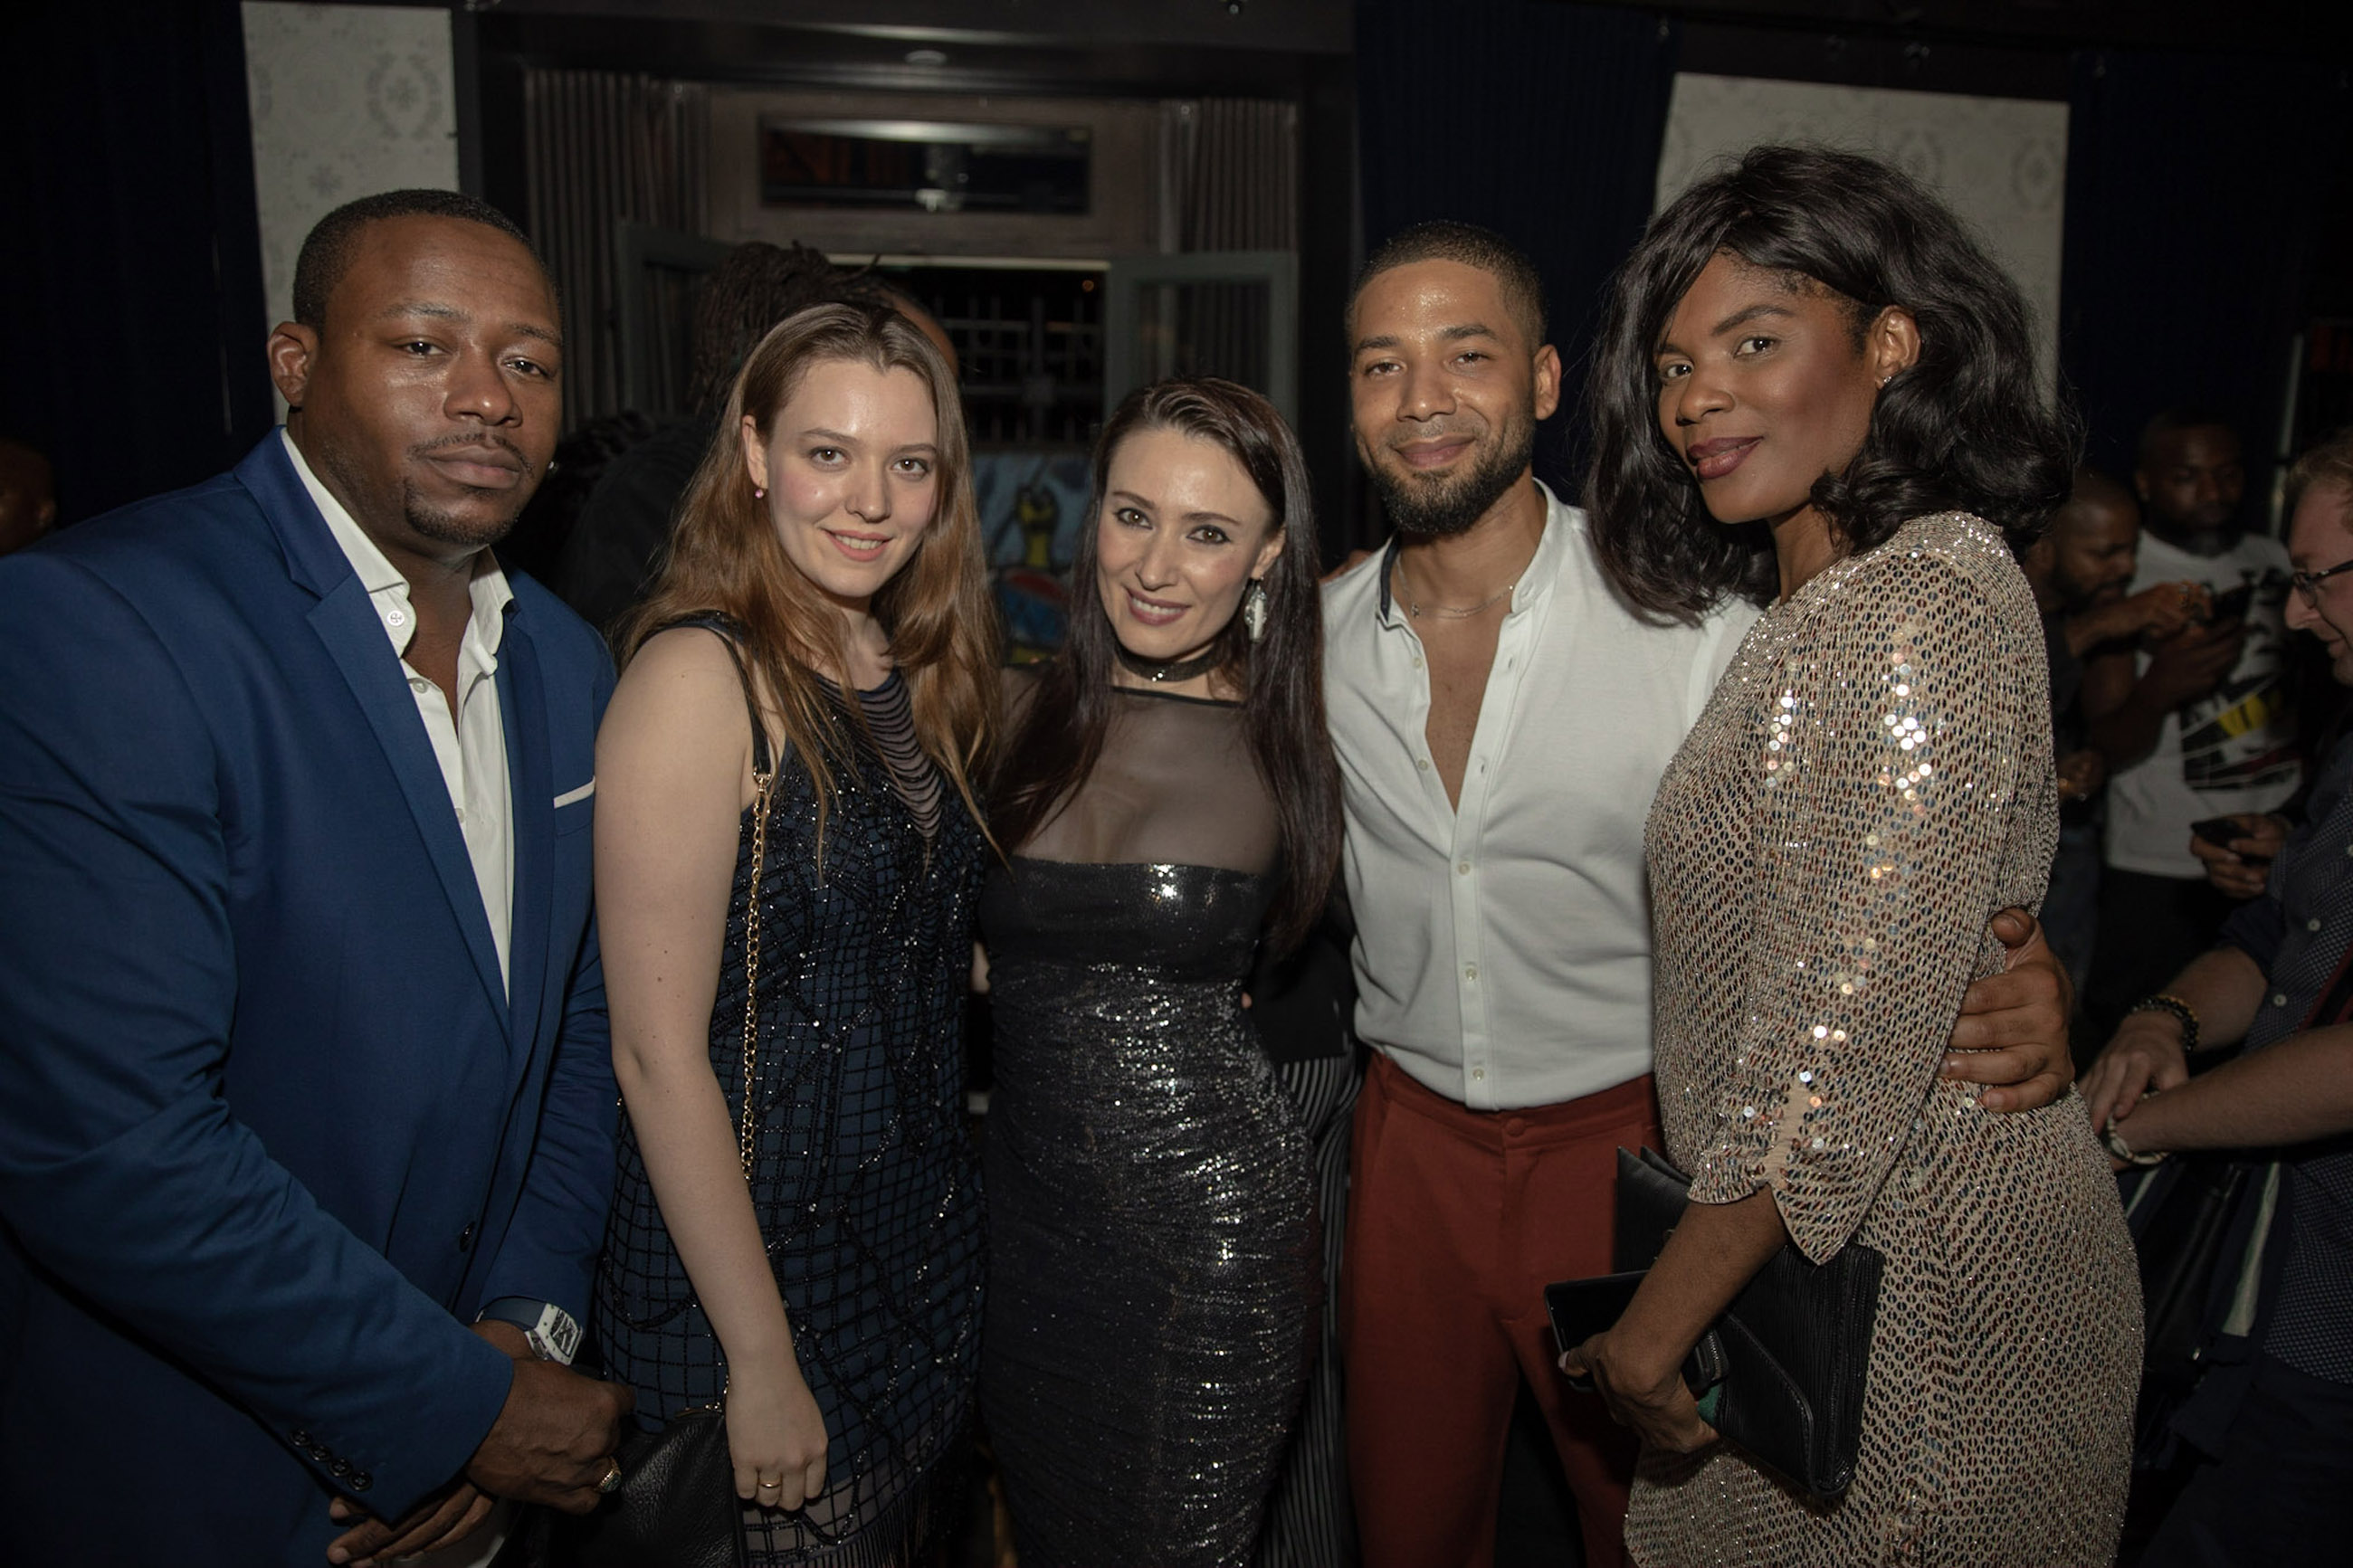 Spirit & Flesh Magazine cover event, William Benson, Vasilisa Deyneko, Yelena Deyneko, Jussie Smollett & Danni Benson by Kenneth de la Torre